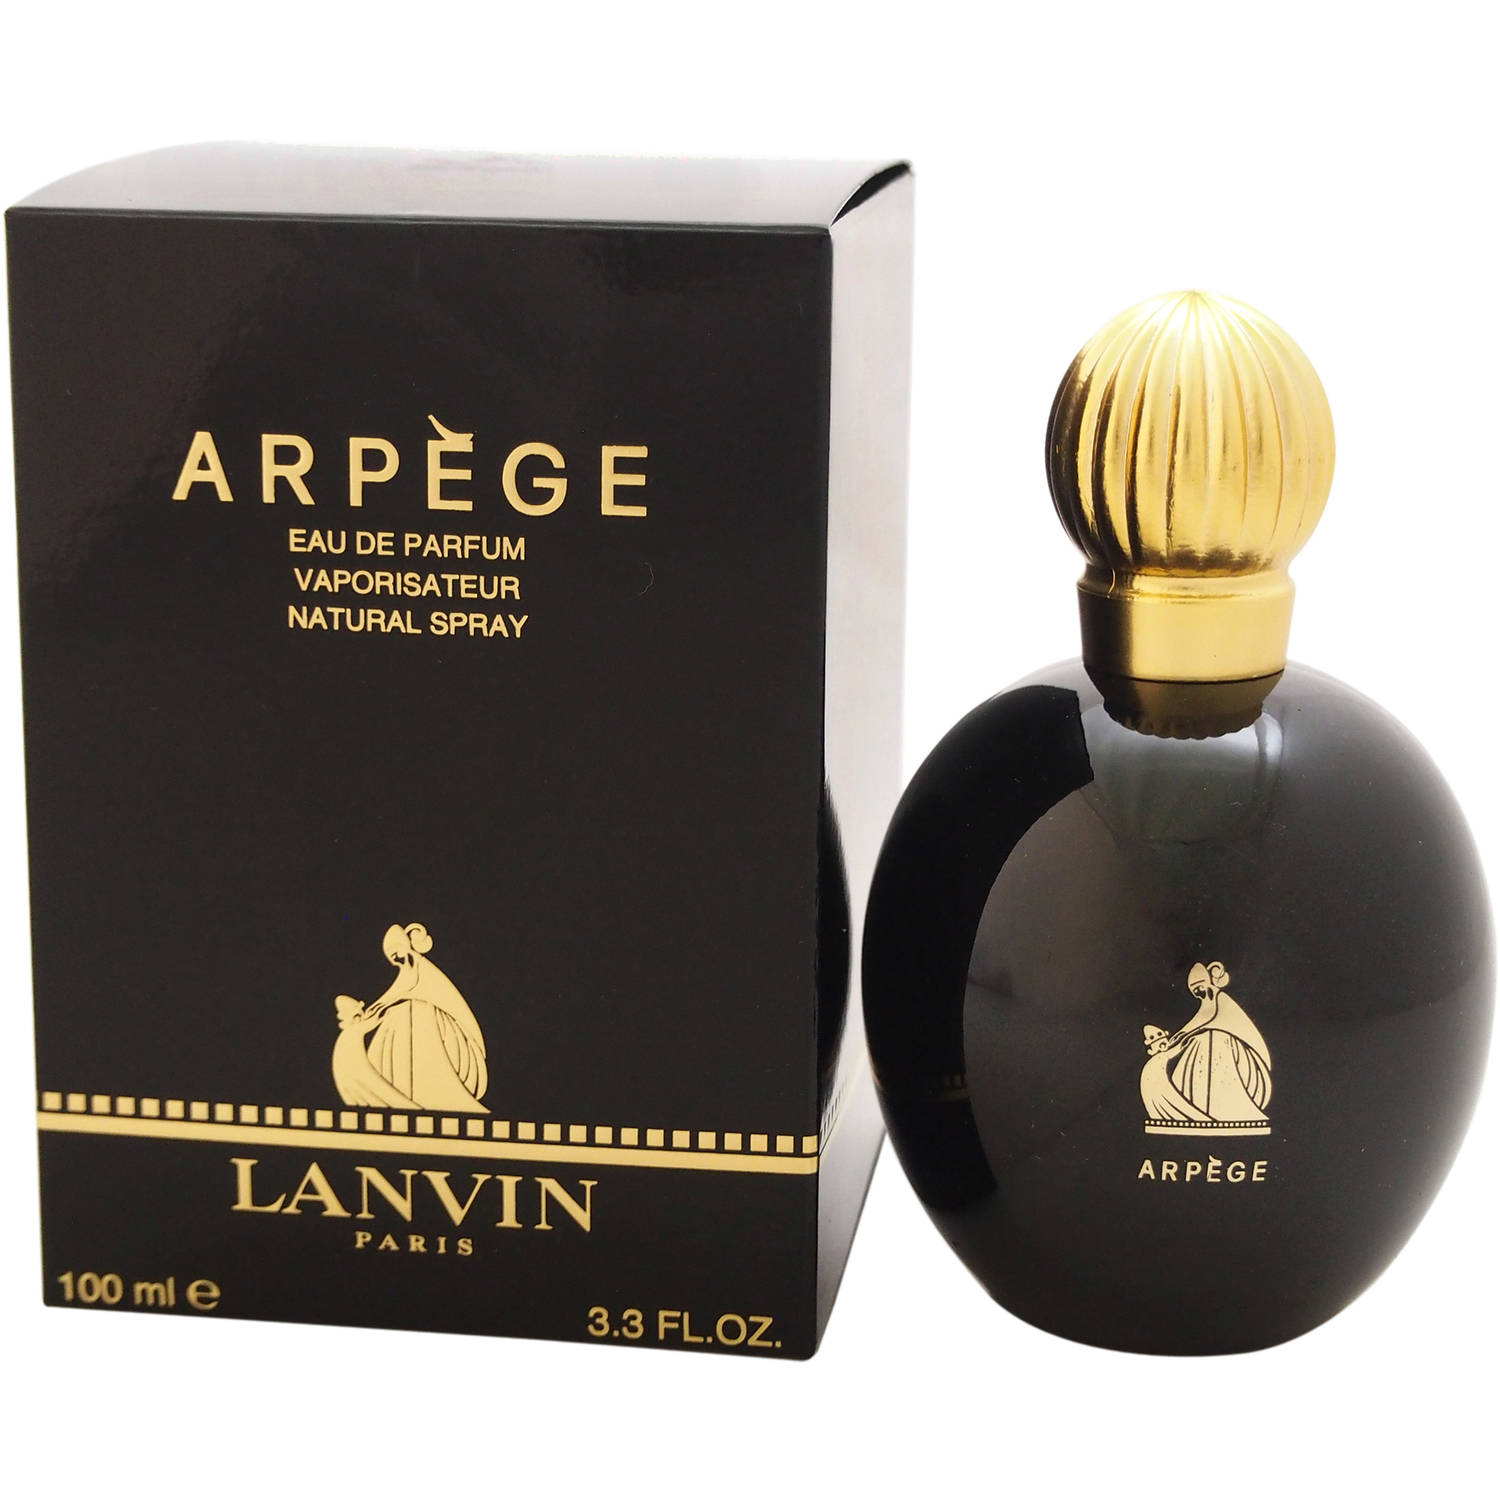 Lanvin Arpege Eau de Parfum Spray for Women, 3.4 fl oz